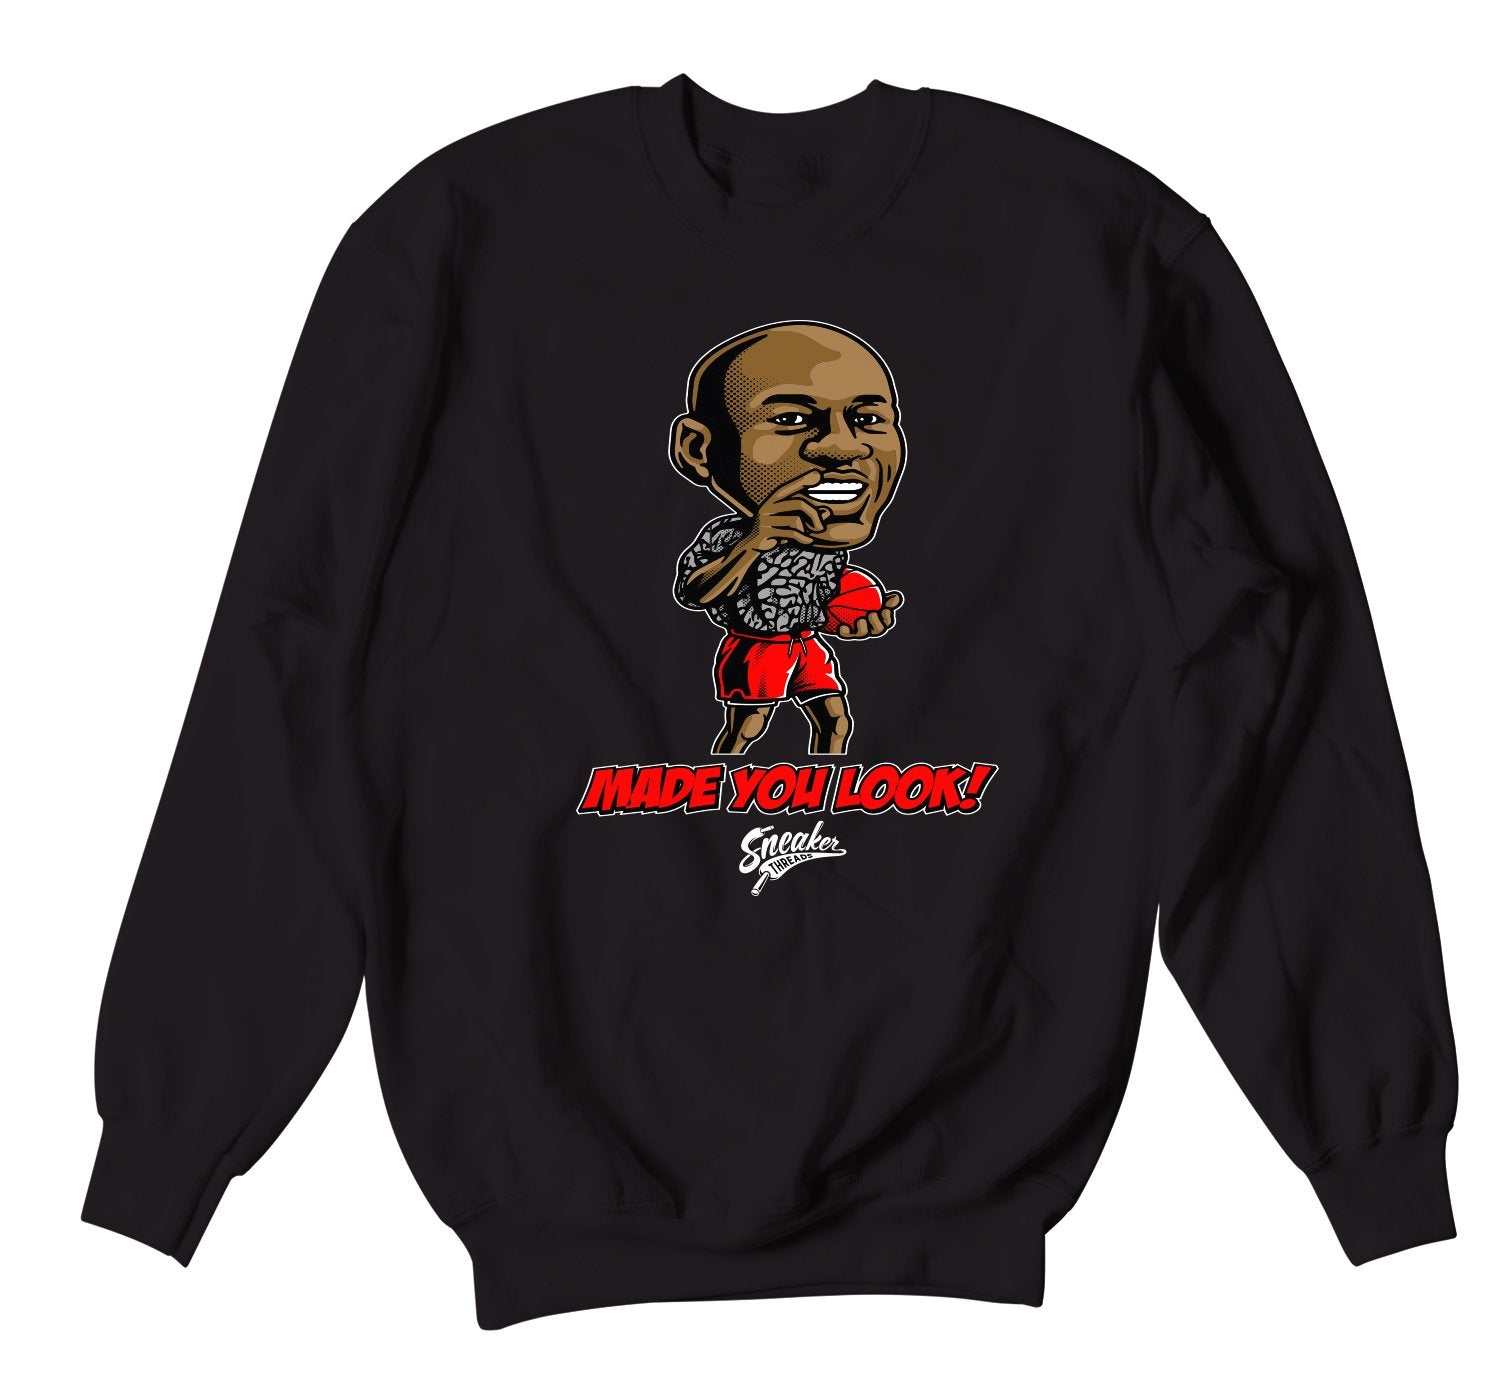 Unite Red Cement Jordan 3 sneakers matching crewneck sweaters